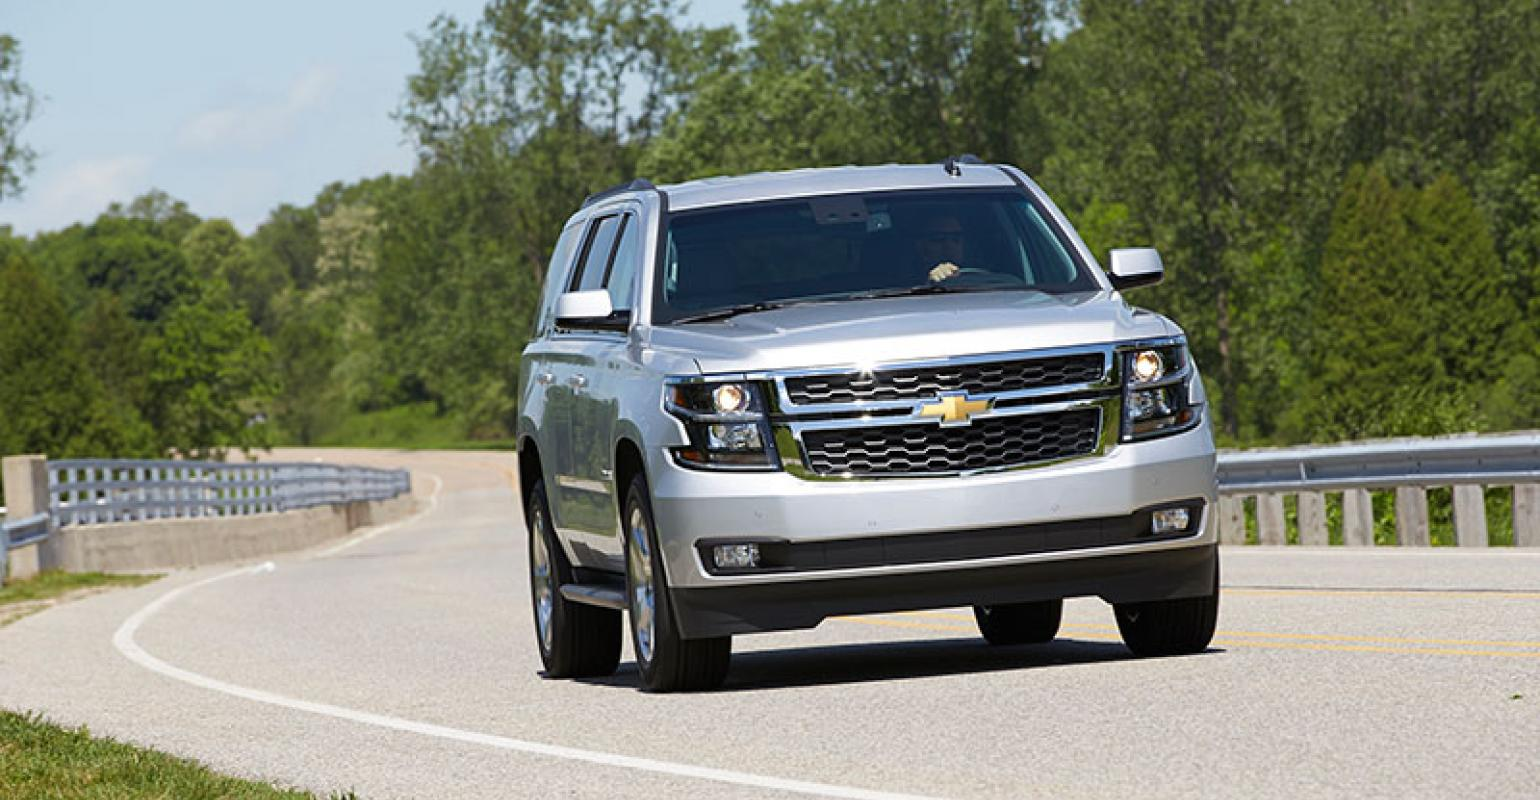 Gm Chrysler Post Strong Sales As U S Recovery Gains Steam Wardsauto